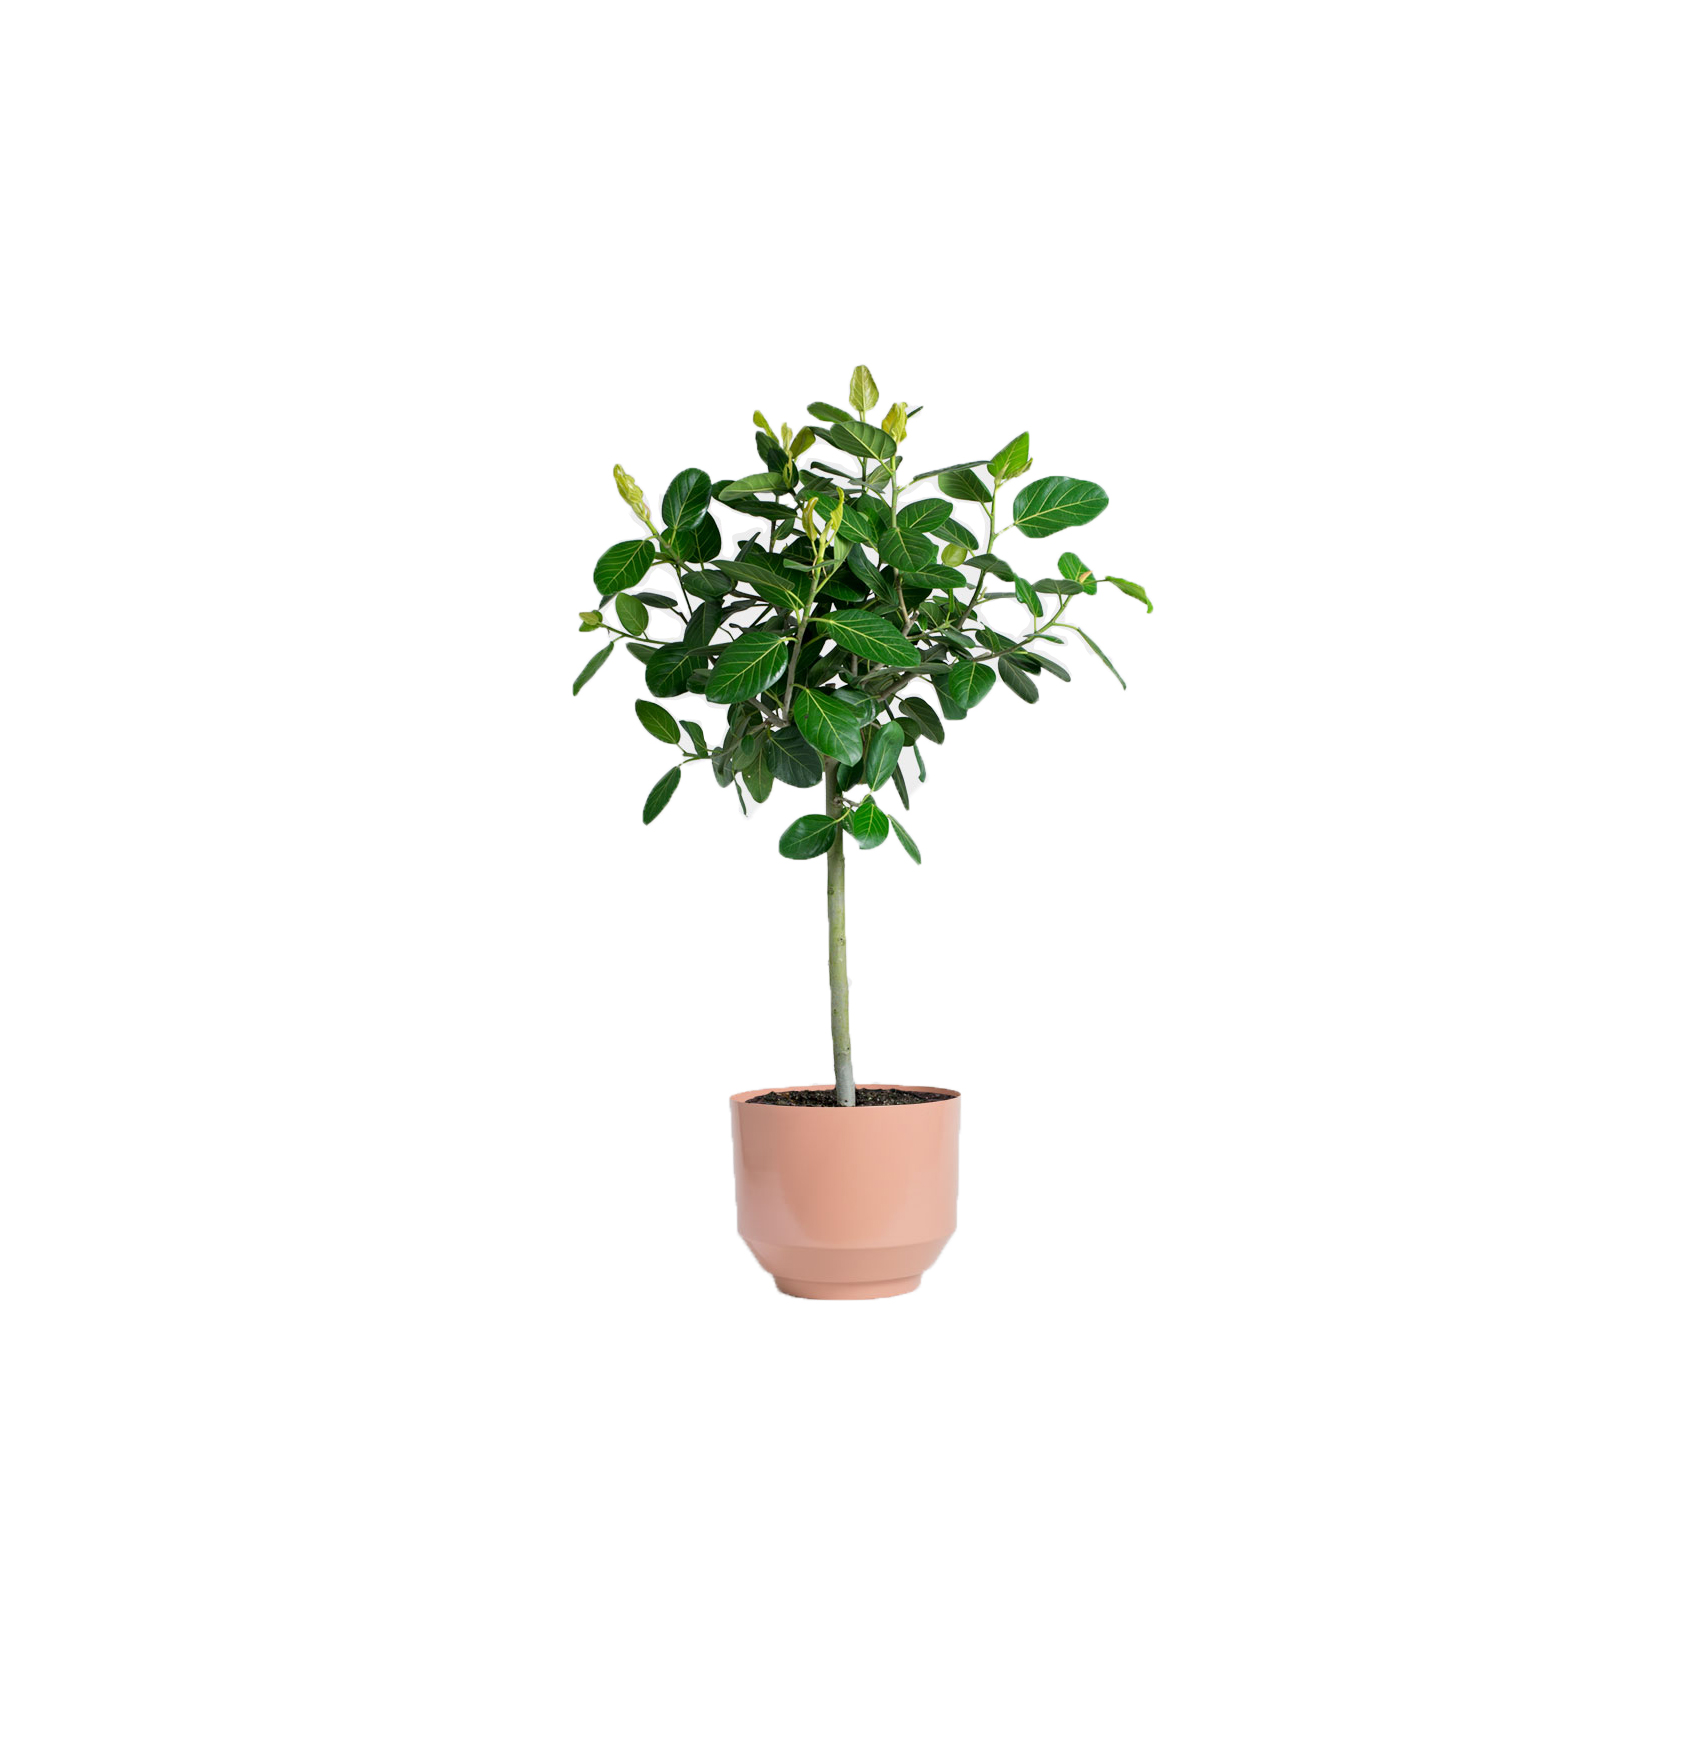 Ficus benghalensis, also called ficus audrey, in a planter